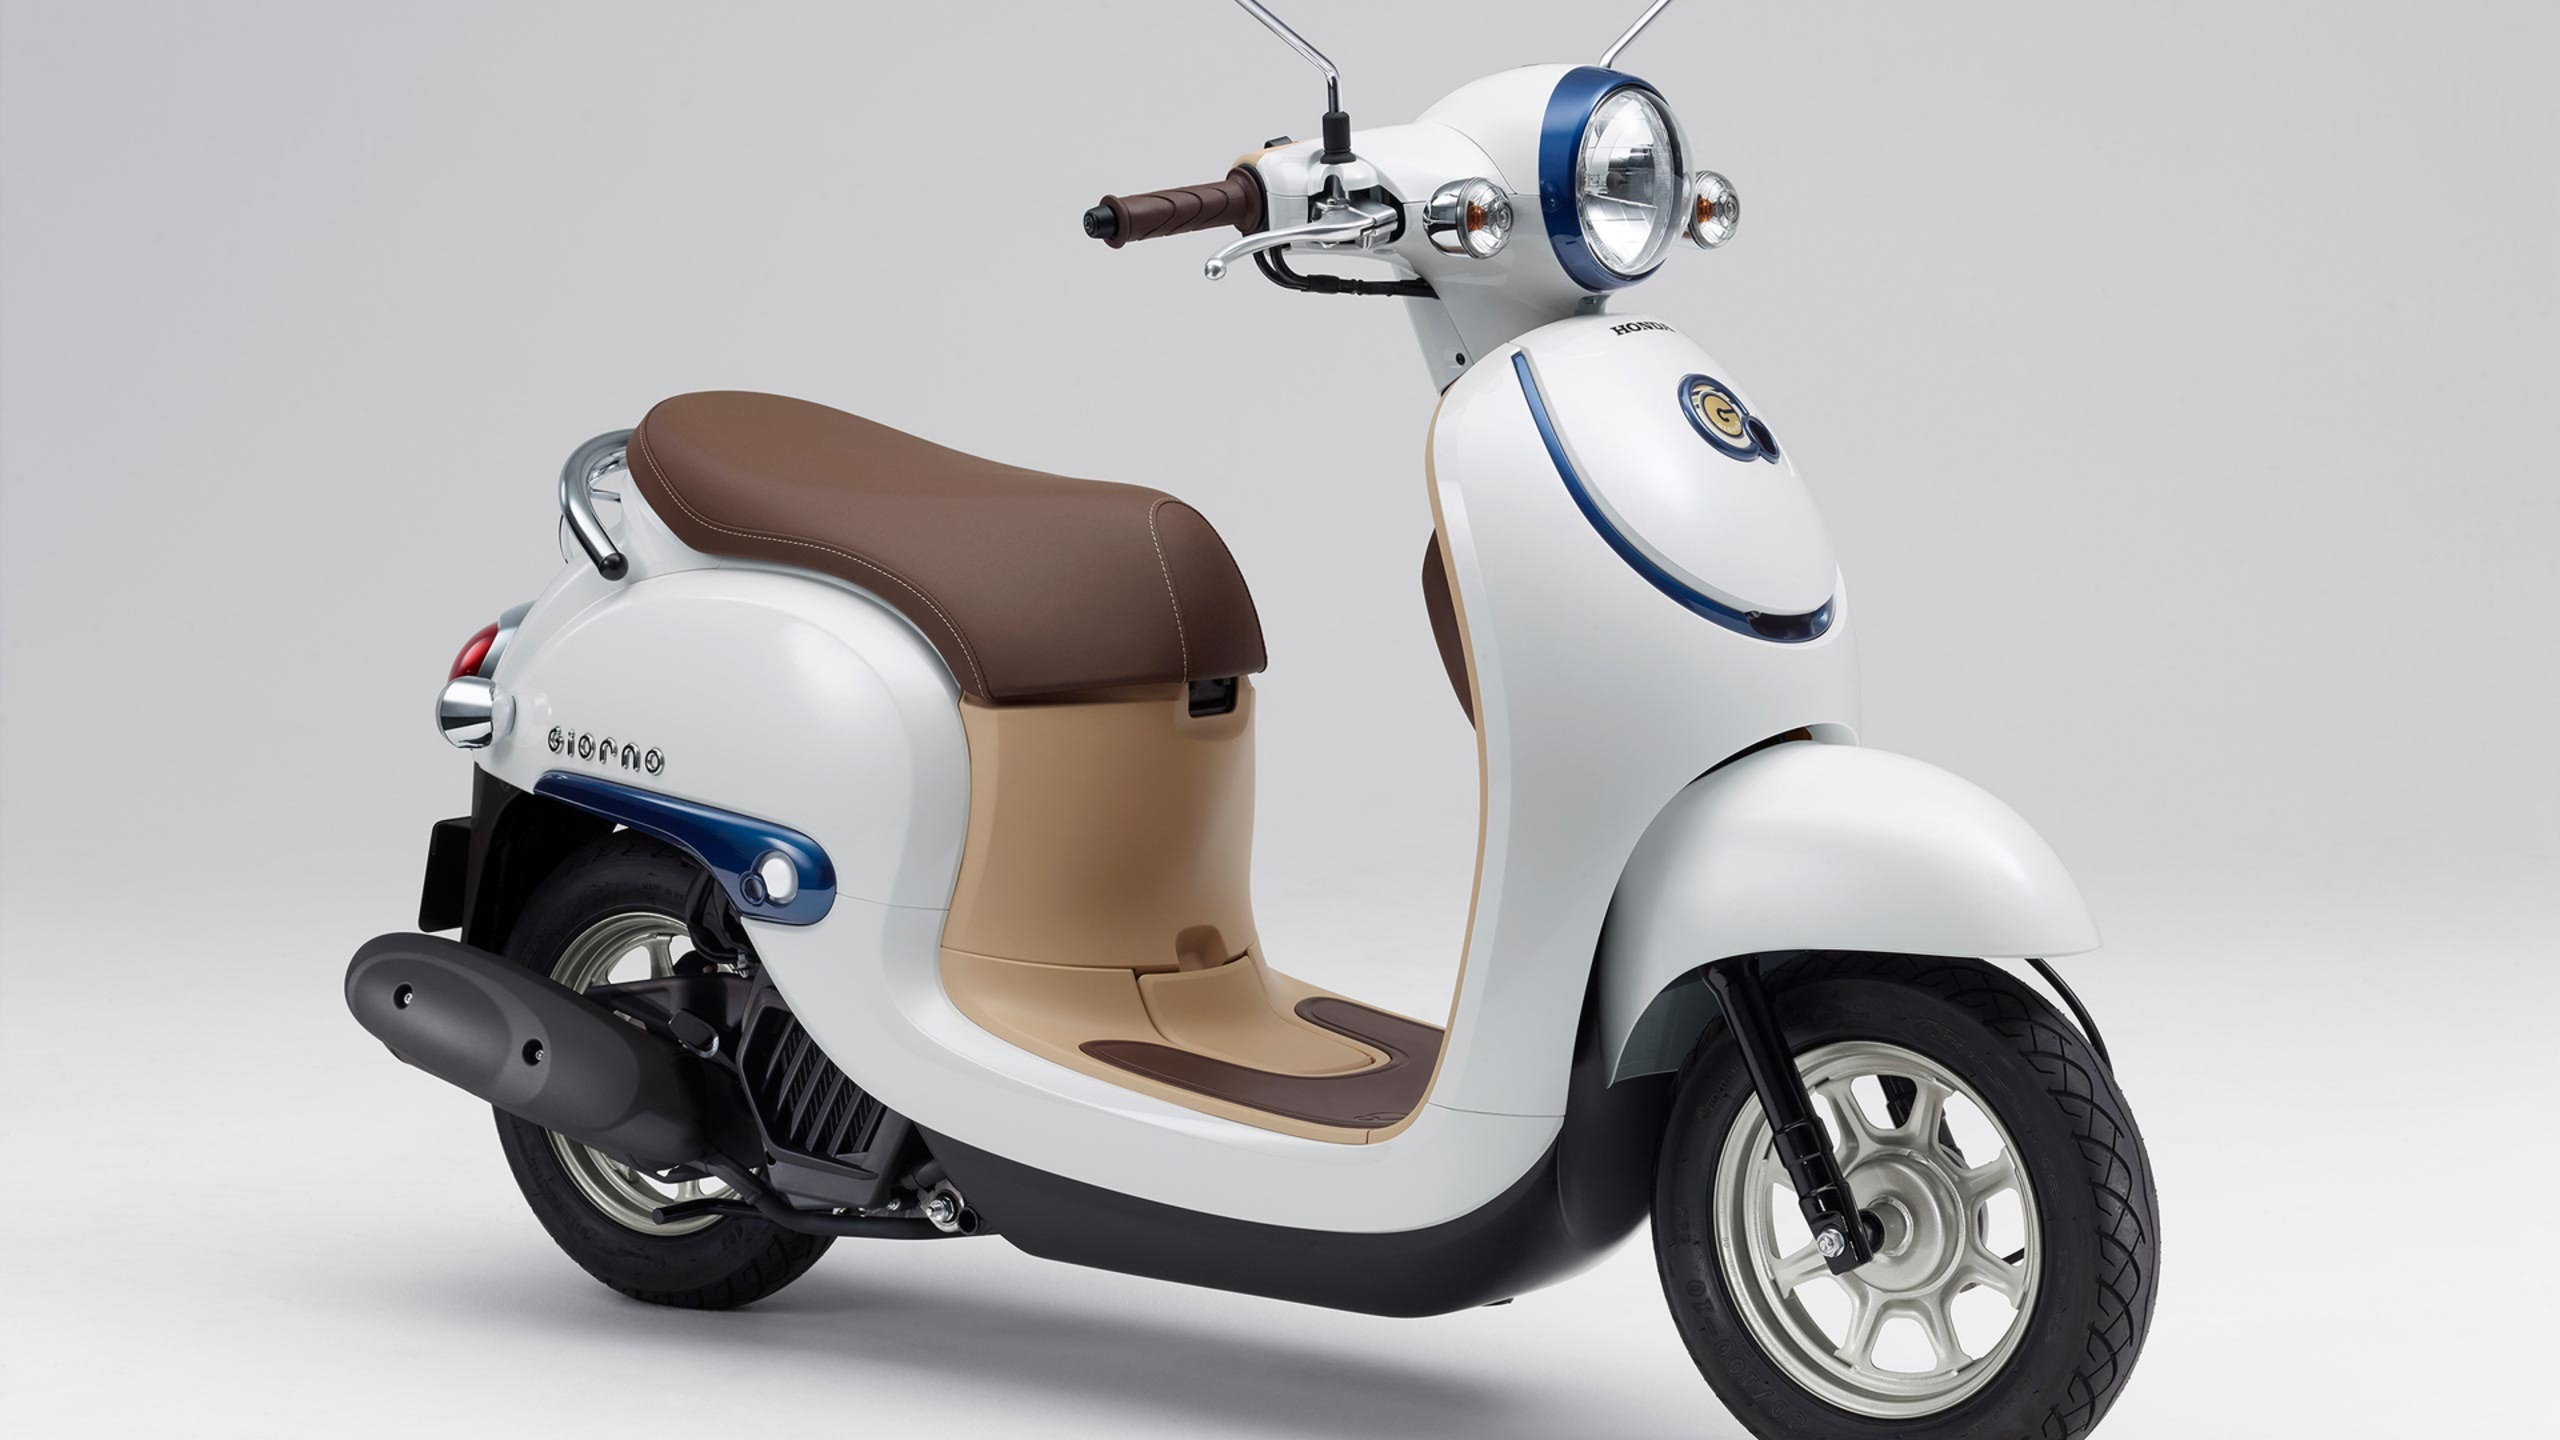 wheel chair motor revolving setting rivals honda and yamaha announce talks to collaborate on